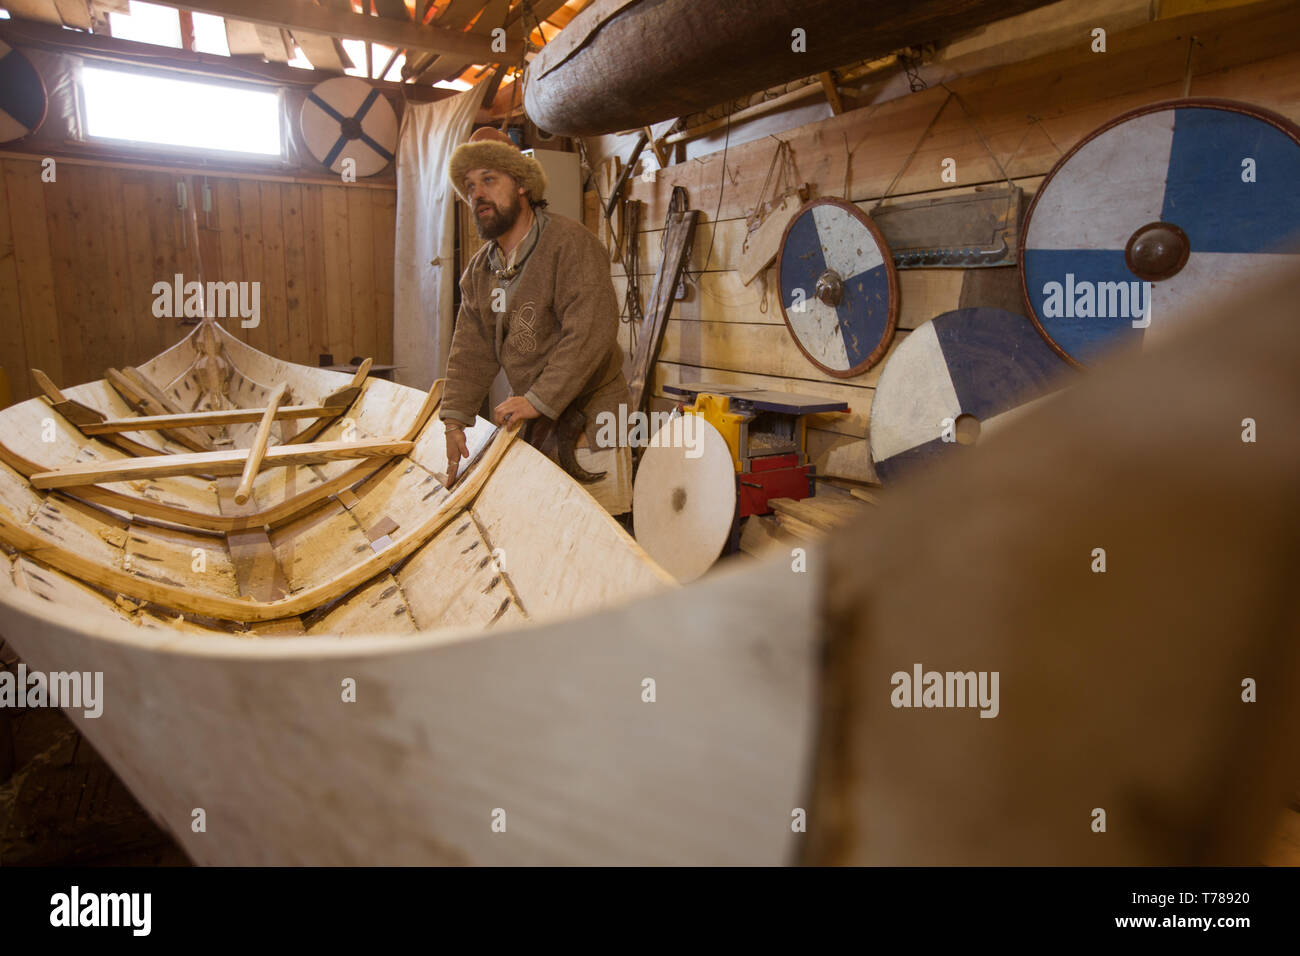 Handmade wooden boat in the barn and reenactor in medieval clothes - Stock Image